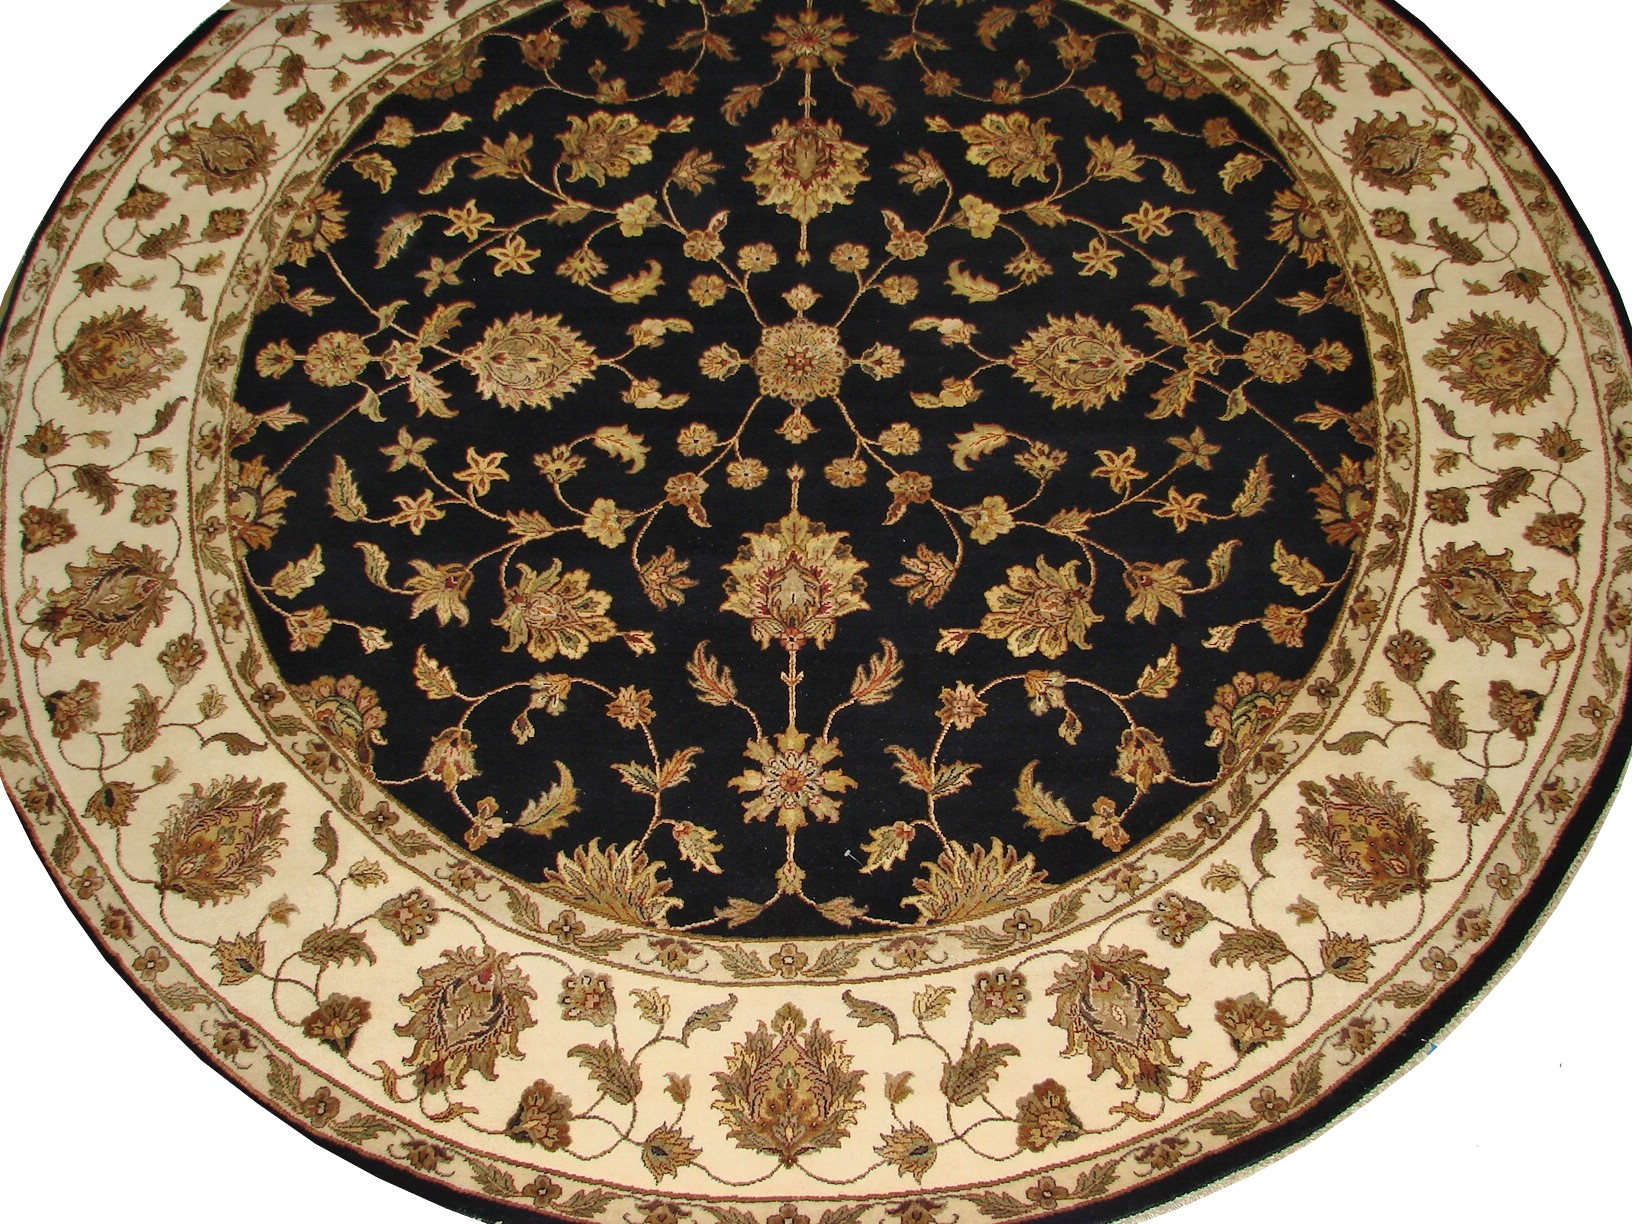 9 ft. & Over Round & Square Silk Flower Hand Knotted Wool Area Rug - MR16016